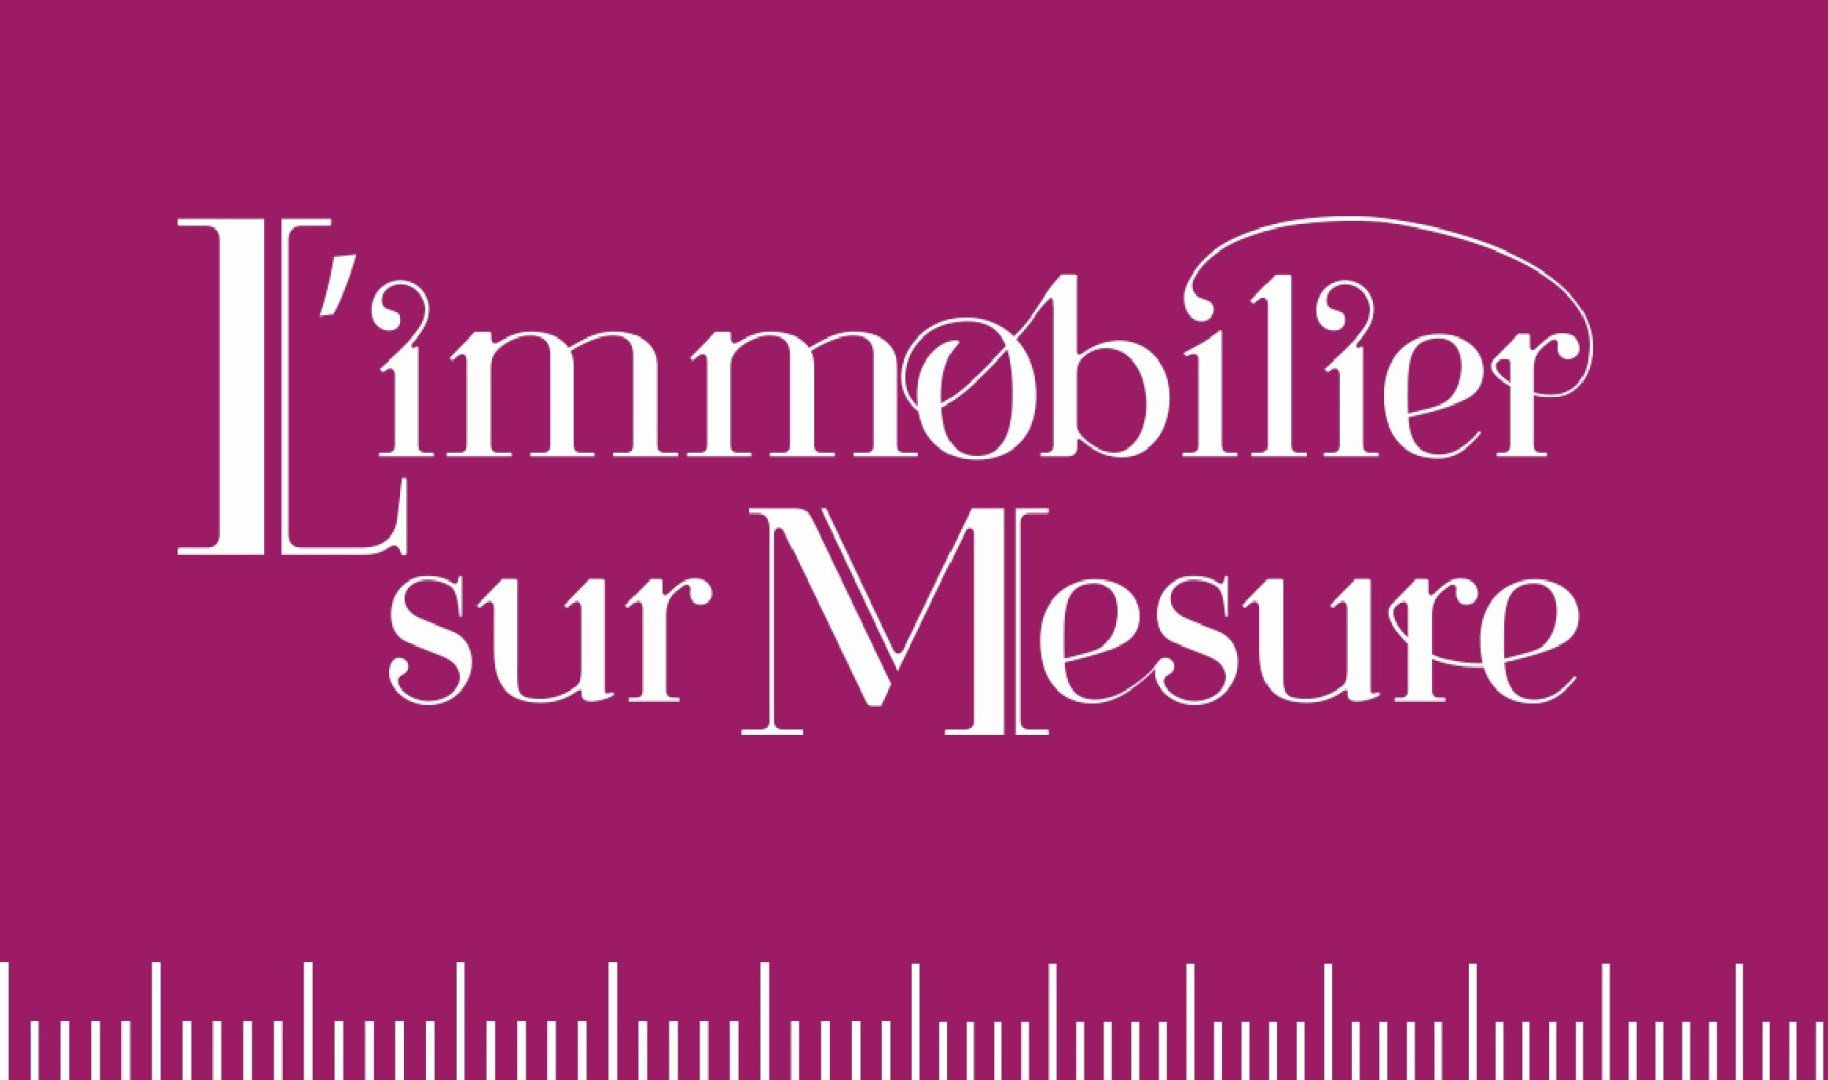 Immobilier sur mesure agence immobili re paris 12 me for Agence immobiliere vincennes